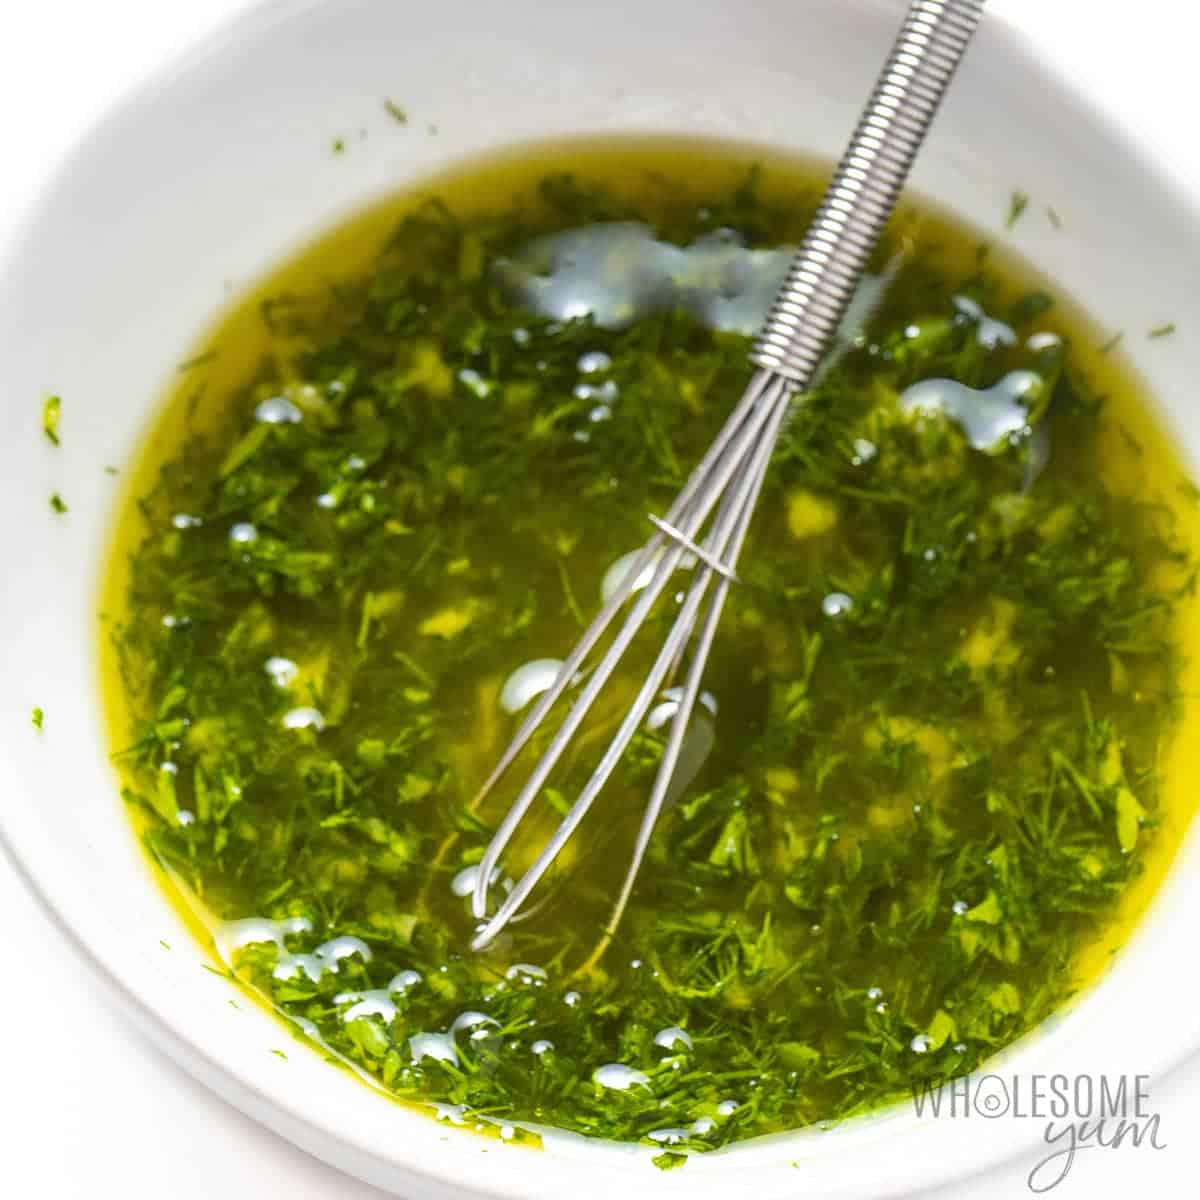 Olive oil herb mixture for best baked salmon